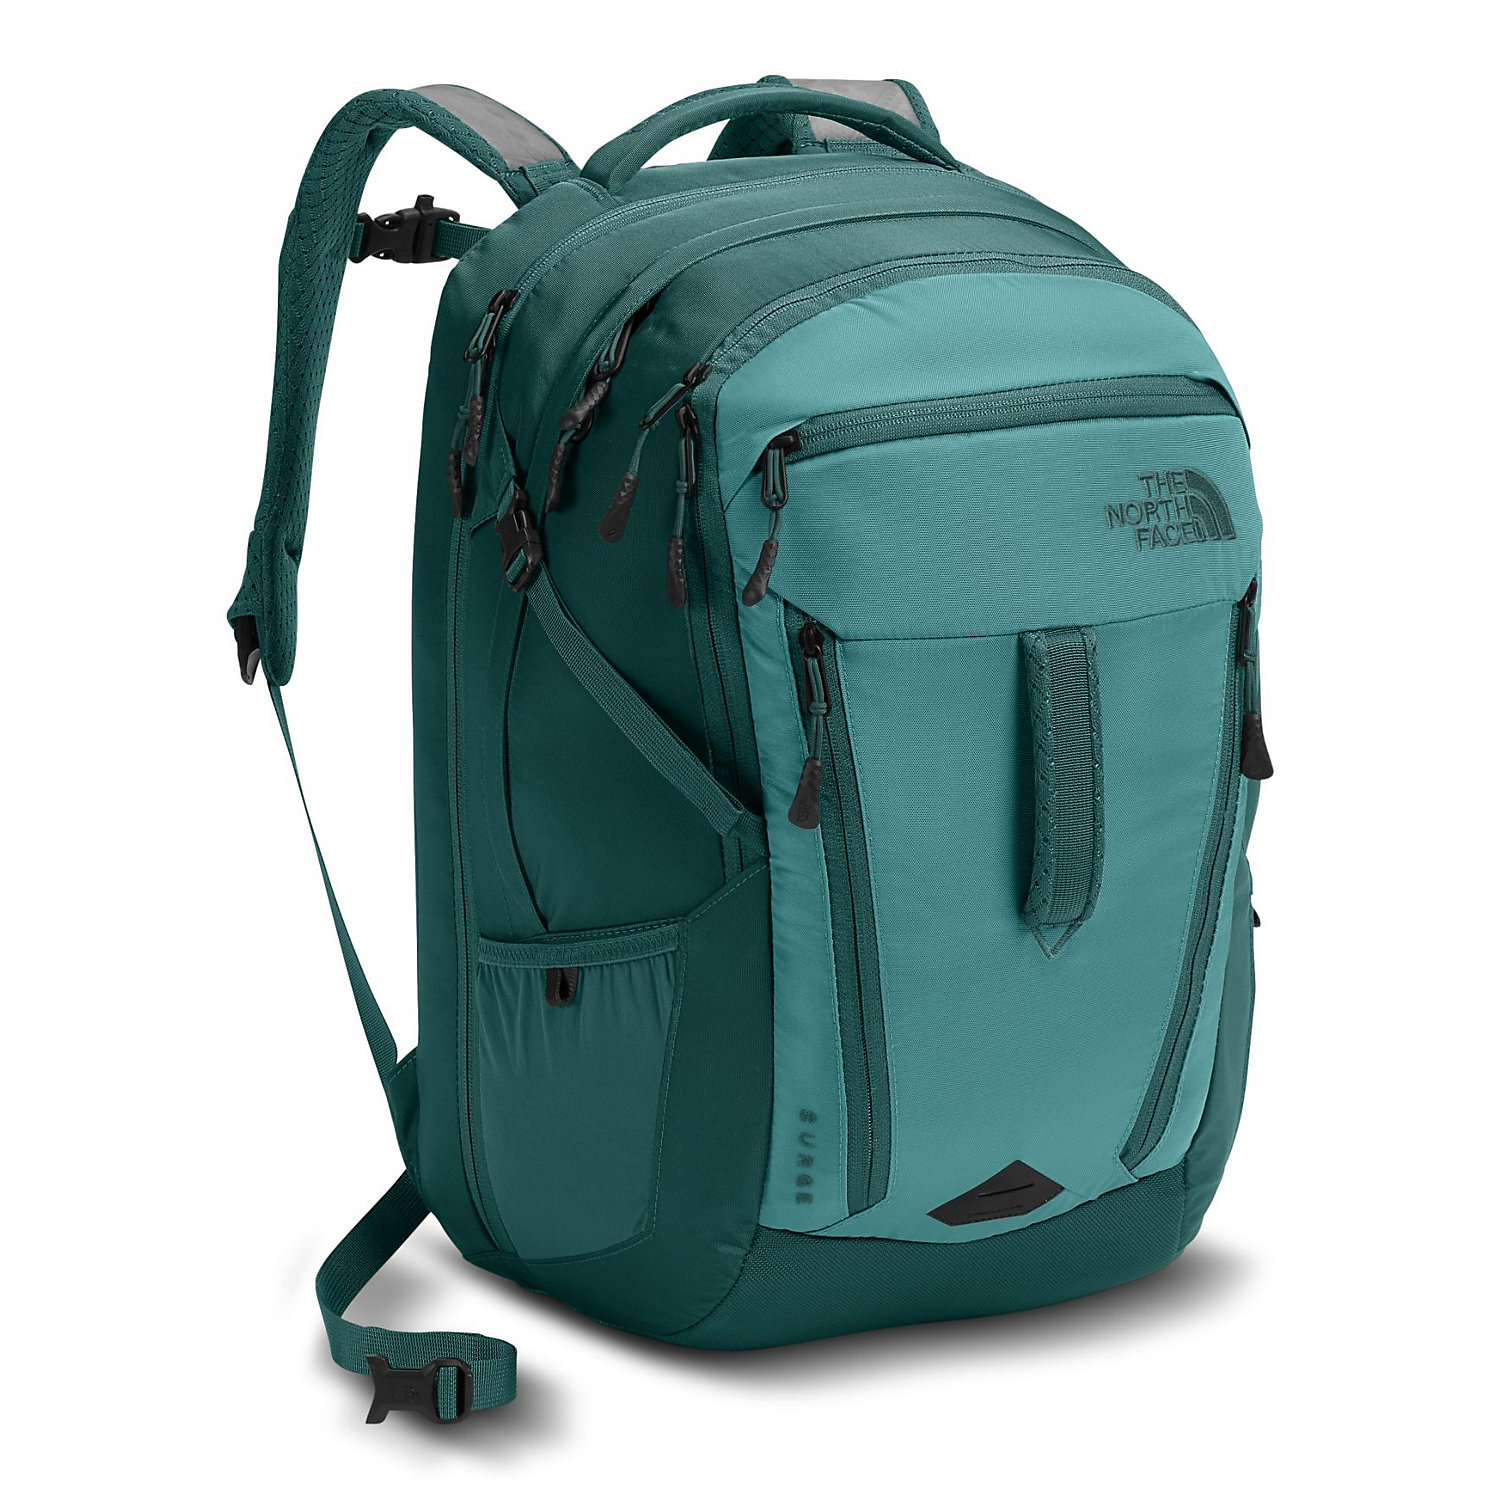 The North Face Women s Surge Backpack. Double tap to zoom fbbdd84815